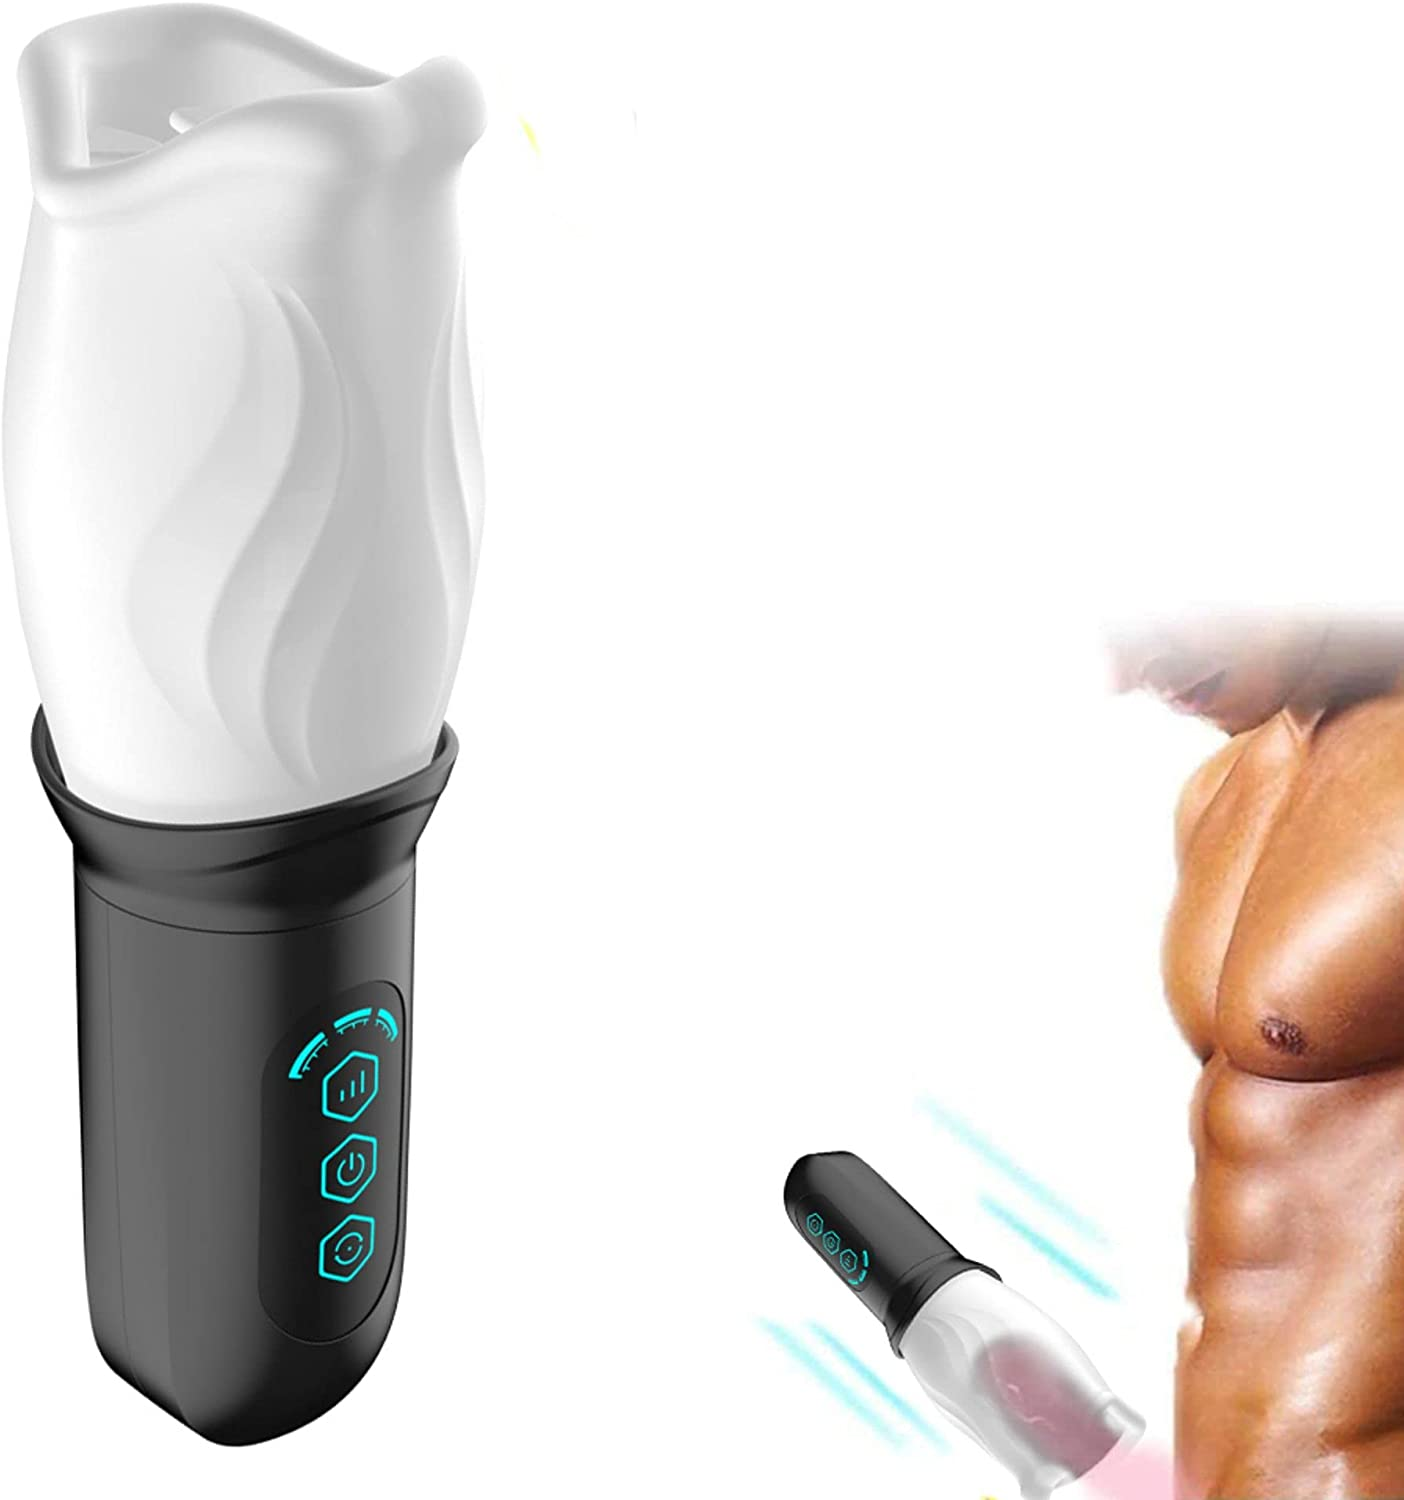 or'àl Cup 3 Magic Vibrating Modes Hands F free shipping Sex Make Groans Fun National uniform free shipping